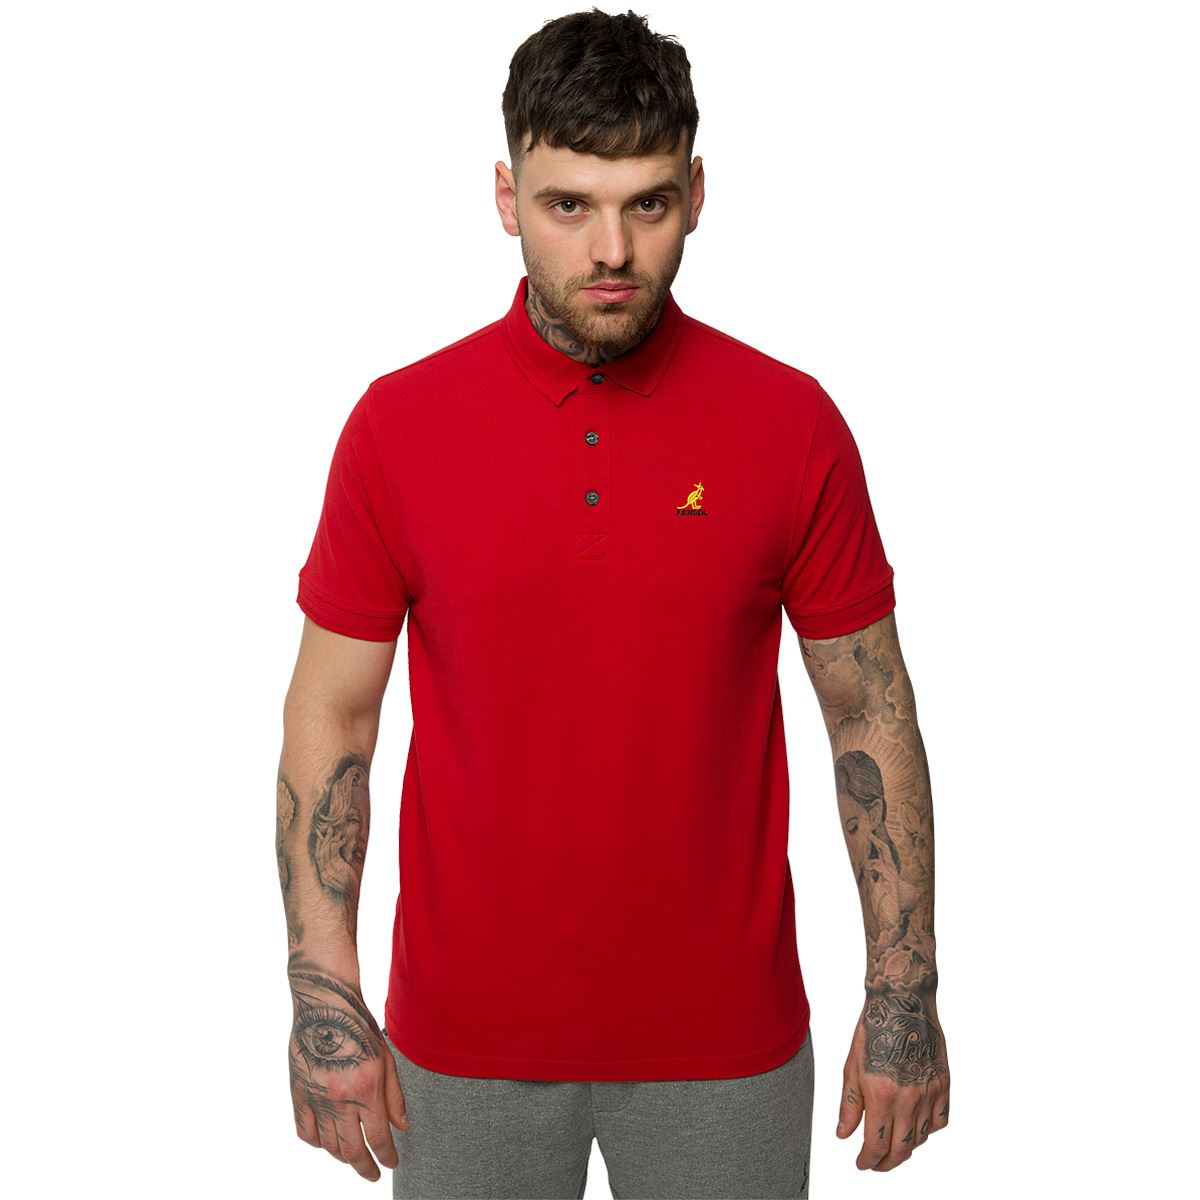 Kangol mens classic polo shirt plain top designer branded for Branded polo t shirts